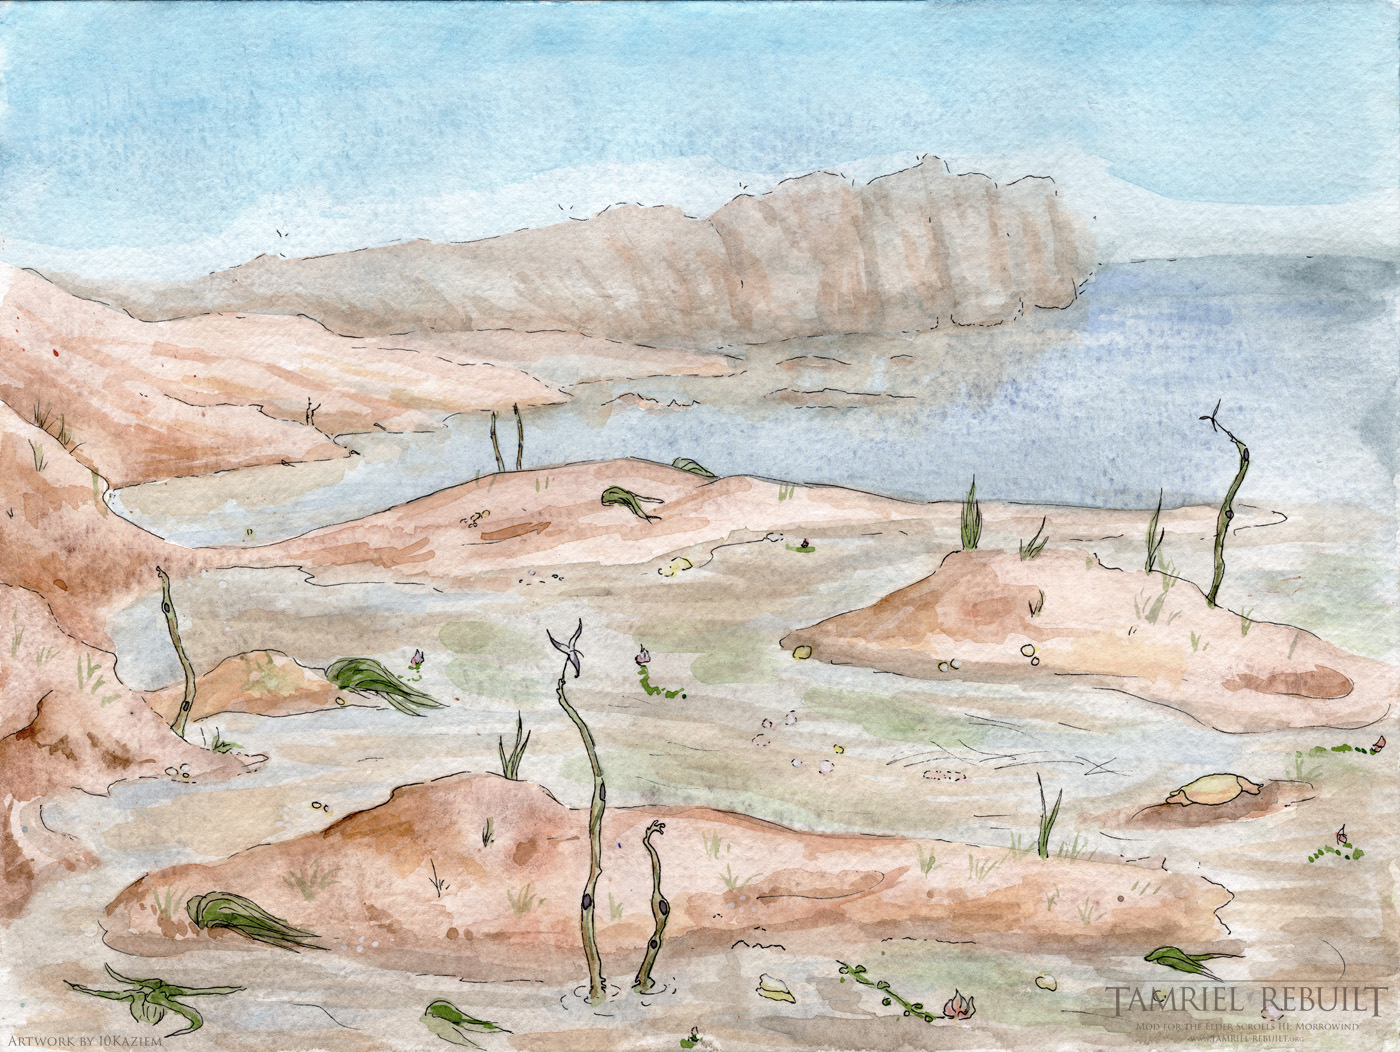 View of the eastern coastal mudflats, with blooming spindlewort. View faces north towards the forested cliffs of more temperate areas. At low-ish tide. Watercolor, micron pen, and gouache on watercolor block, 2016.